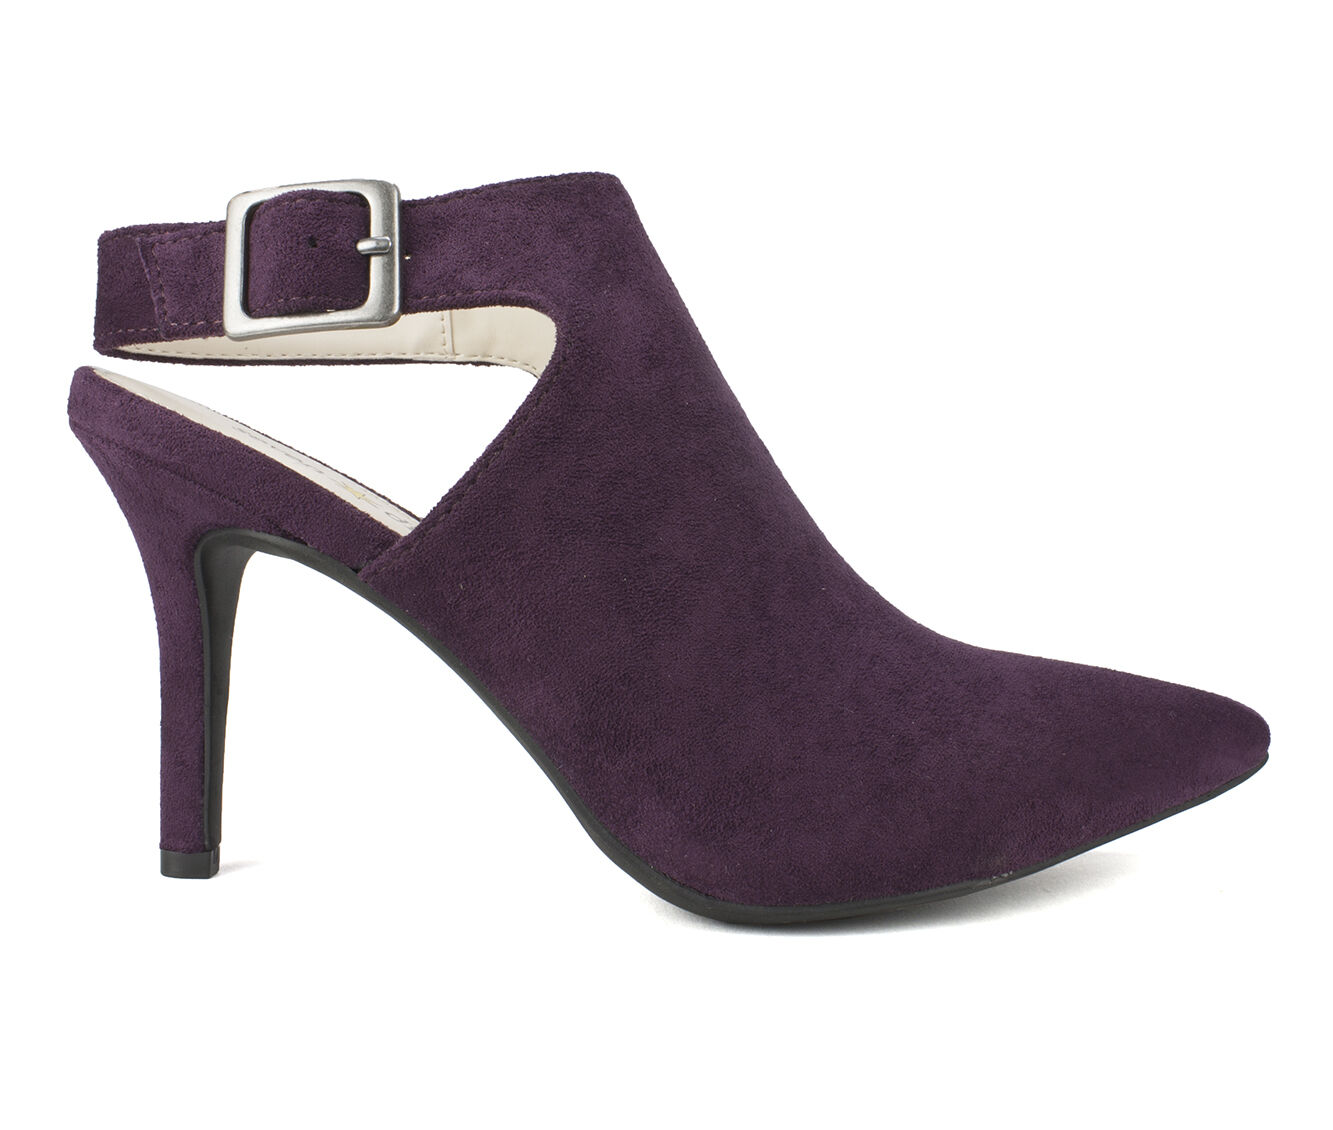 fast delivery avialable Women's Seven Dials Sherly Booties Purple